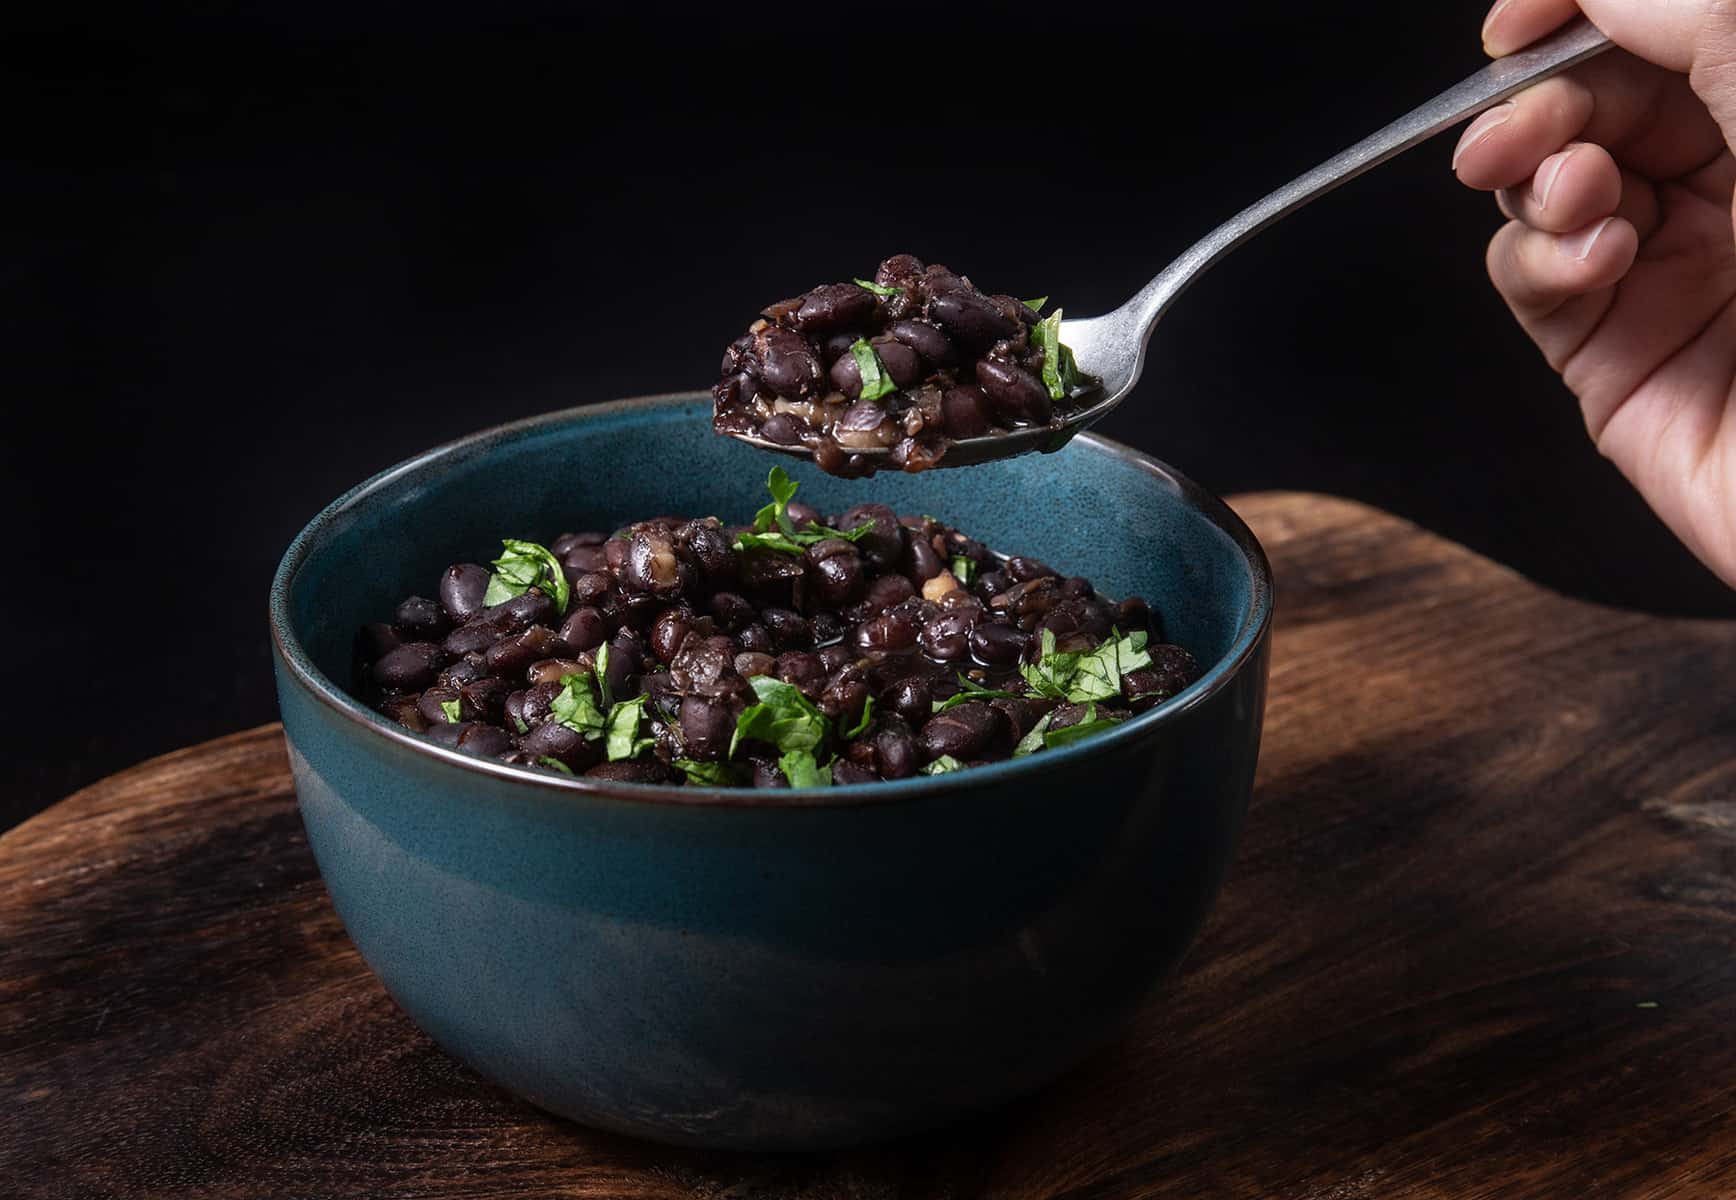 Instant Pot Black Beans Foolproof No Soak Tested By Amy Jacky